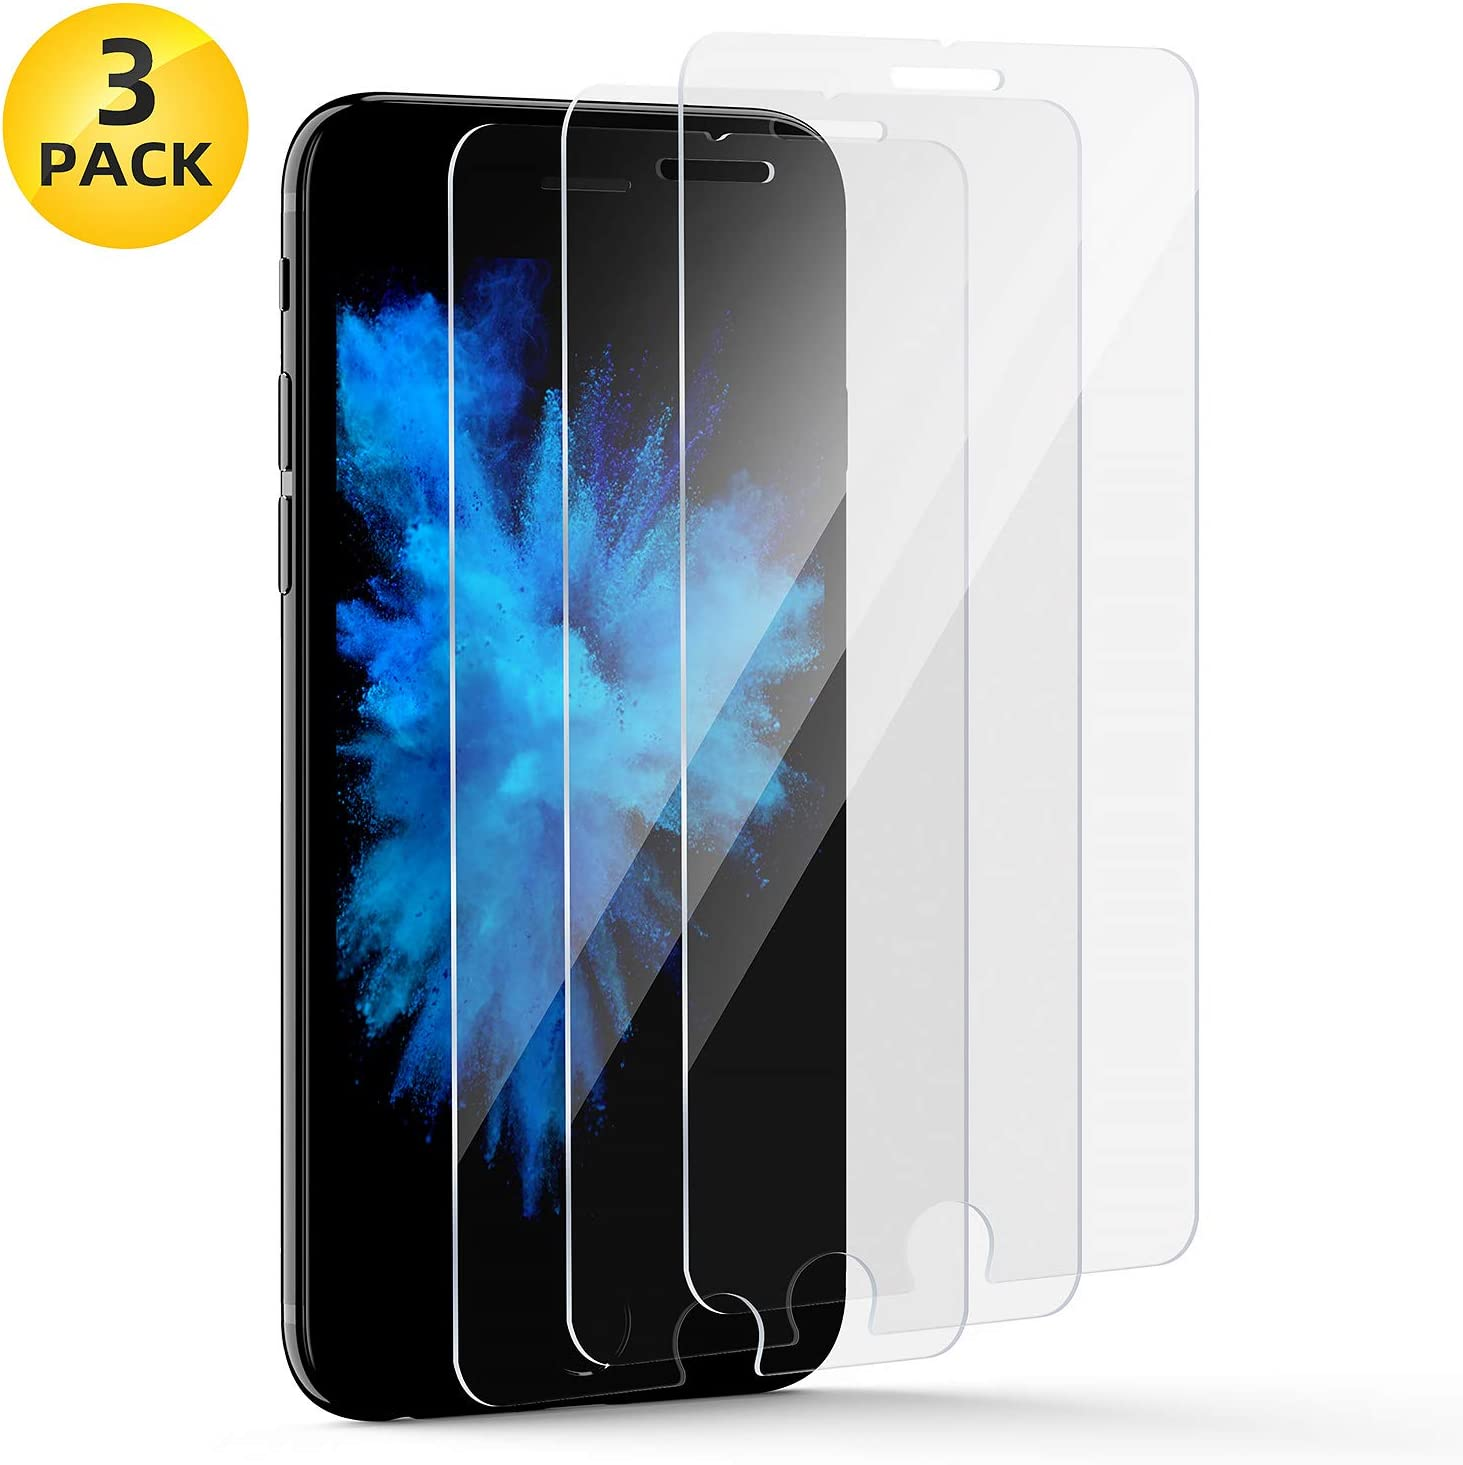 Glass Screen Protector Film for iPhone 8 and iPhone 7 Tempered Glass Clear [3 Pack] [4.7 Inch]